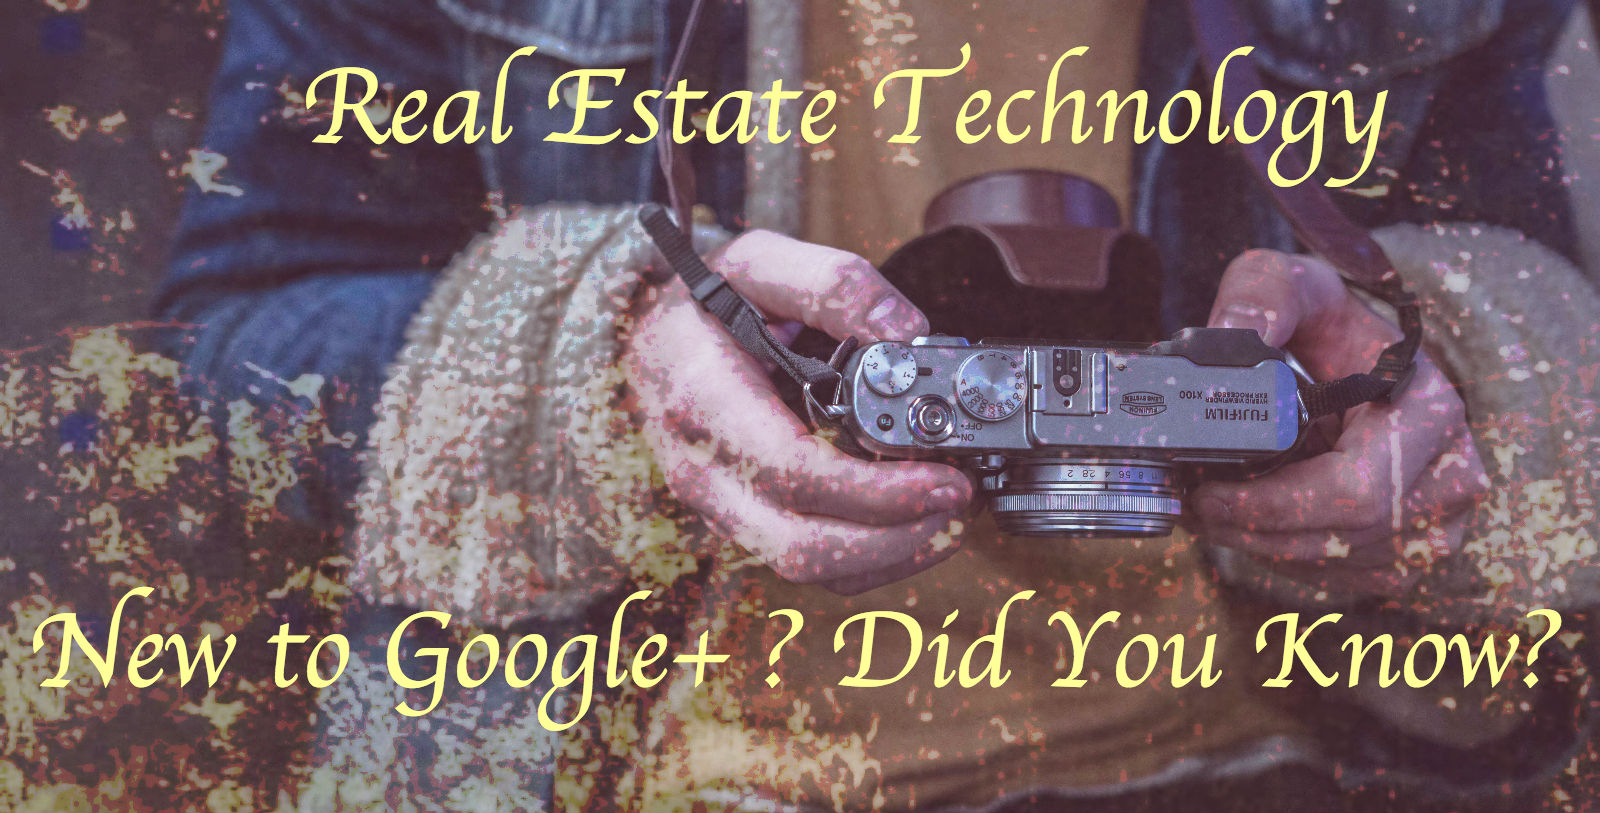 Real Estate Technology: Beginner's Guide to Google+